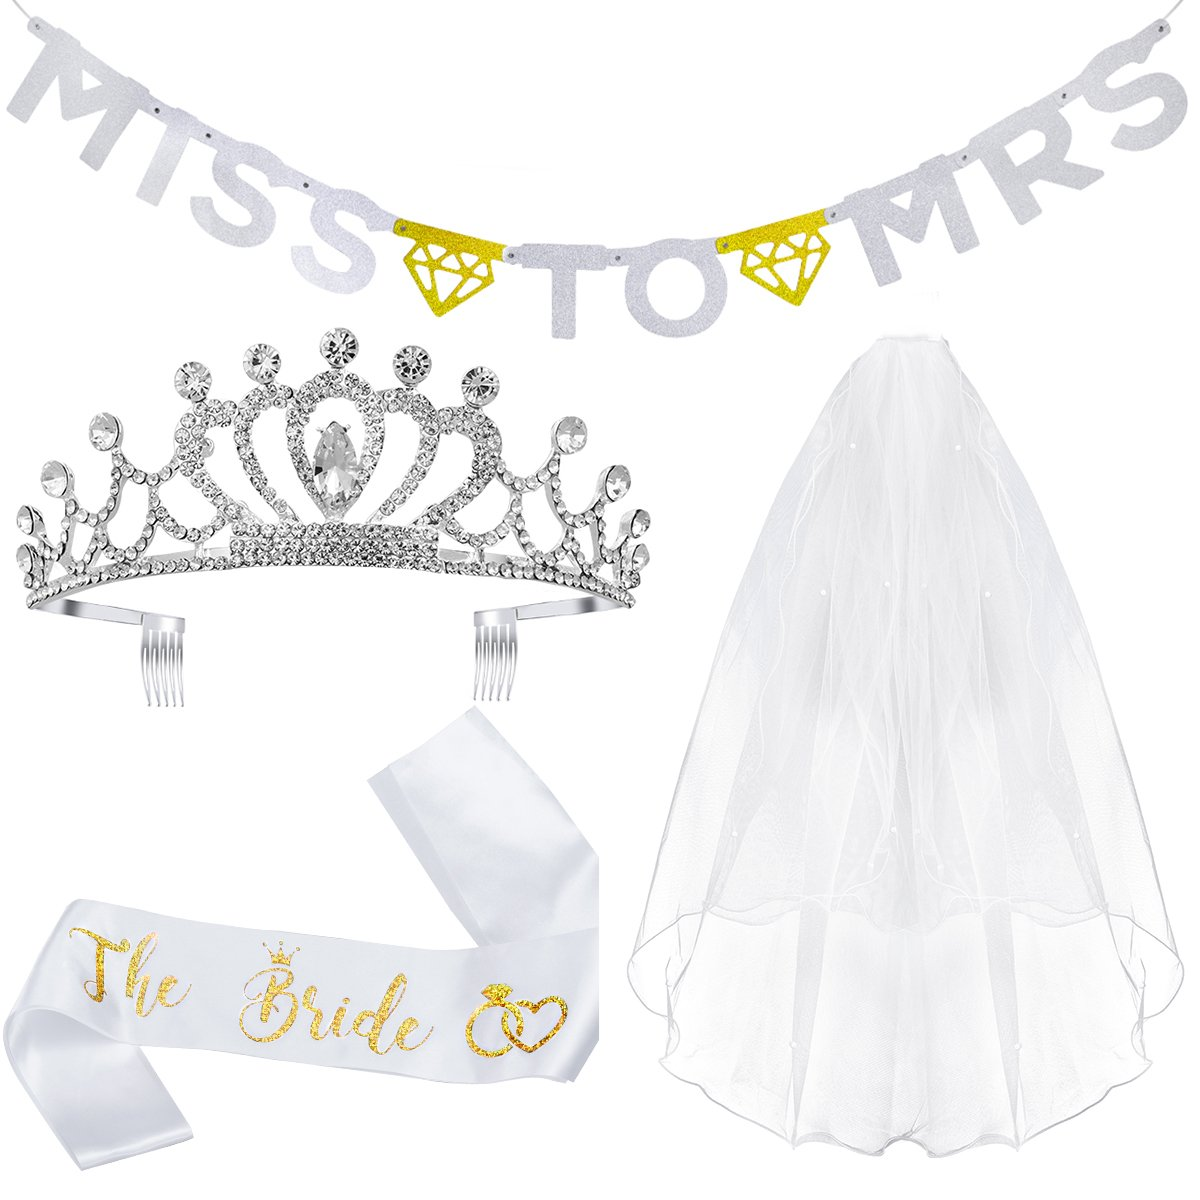 Unomor Bachelorette Party Bridal Shower Veil Sash Tiara and Banner Decorations Kit-Veil with Comb,Glitter Sash, Rhinestone Tiara Crown, Glitter Letter ''Miss to MRS'' Gold and Silver Banner